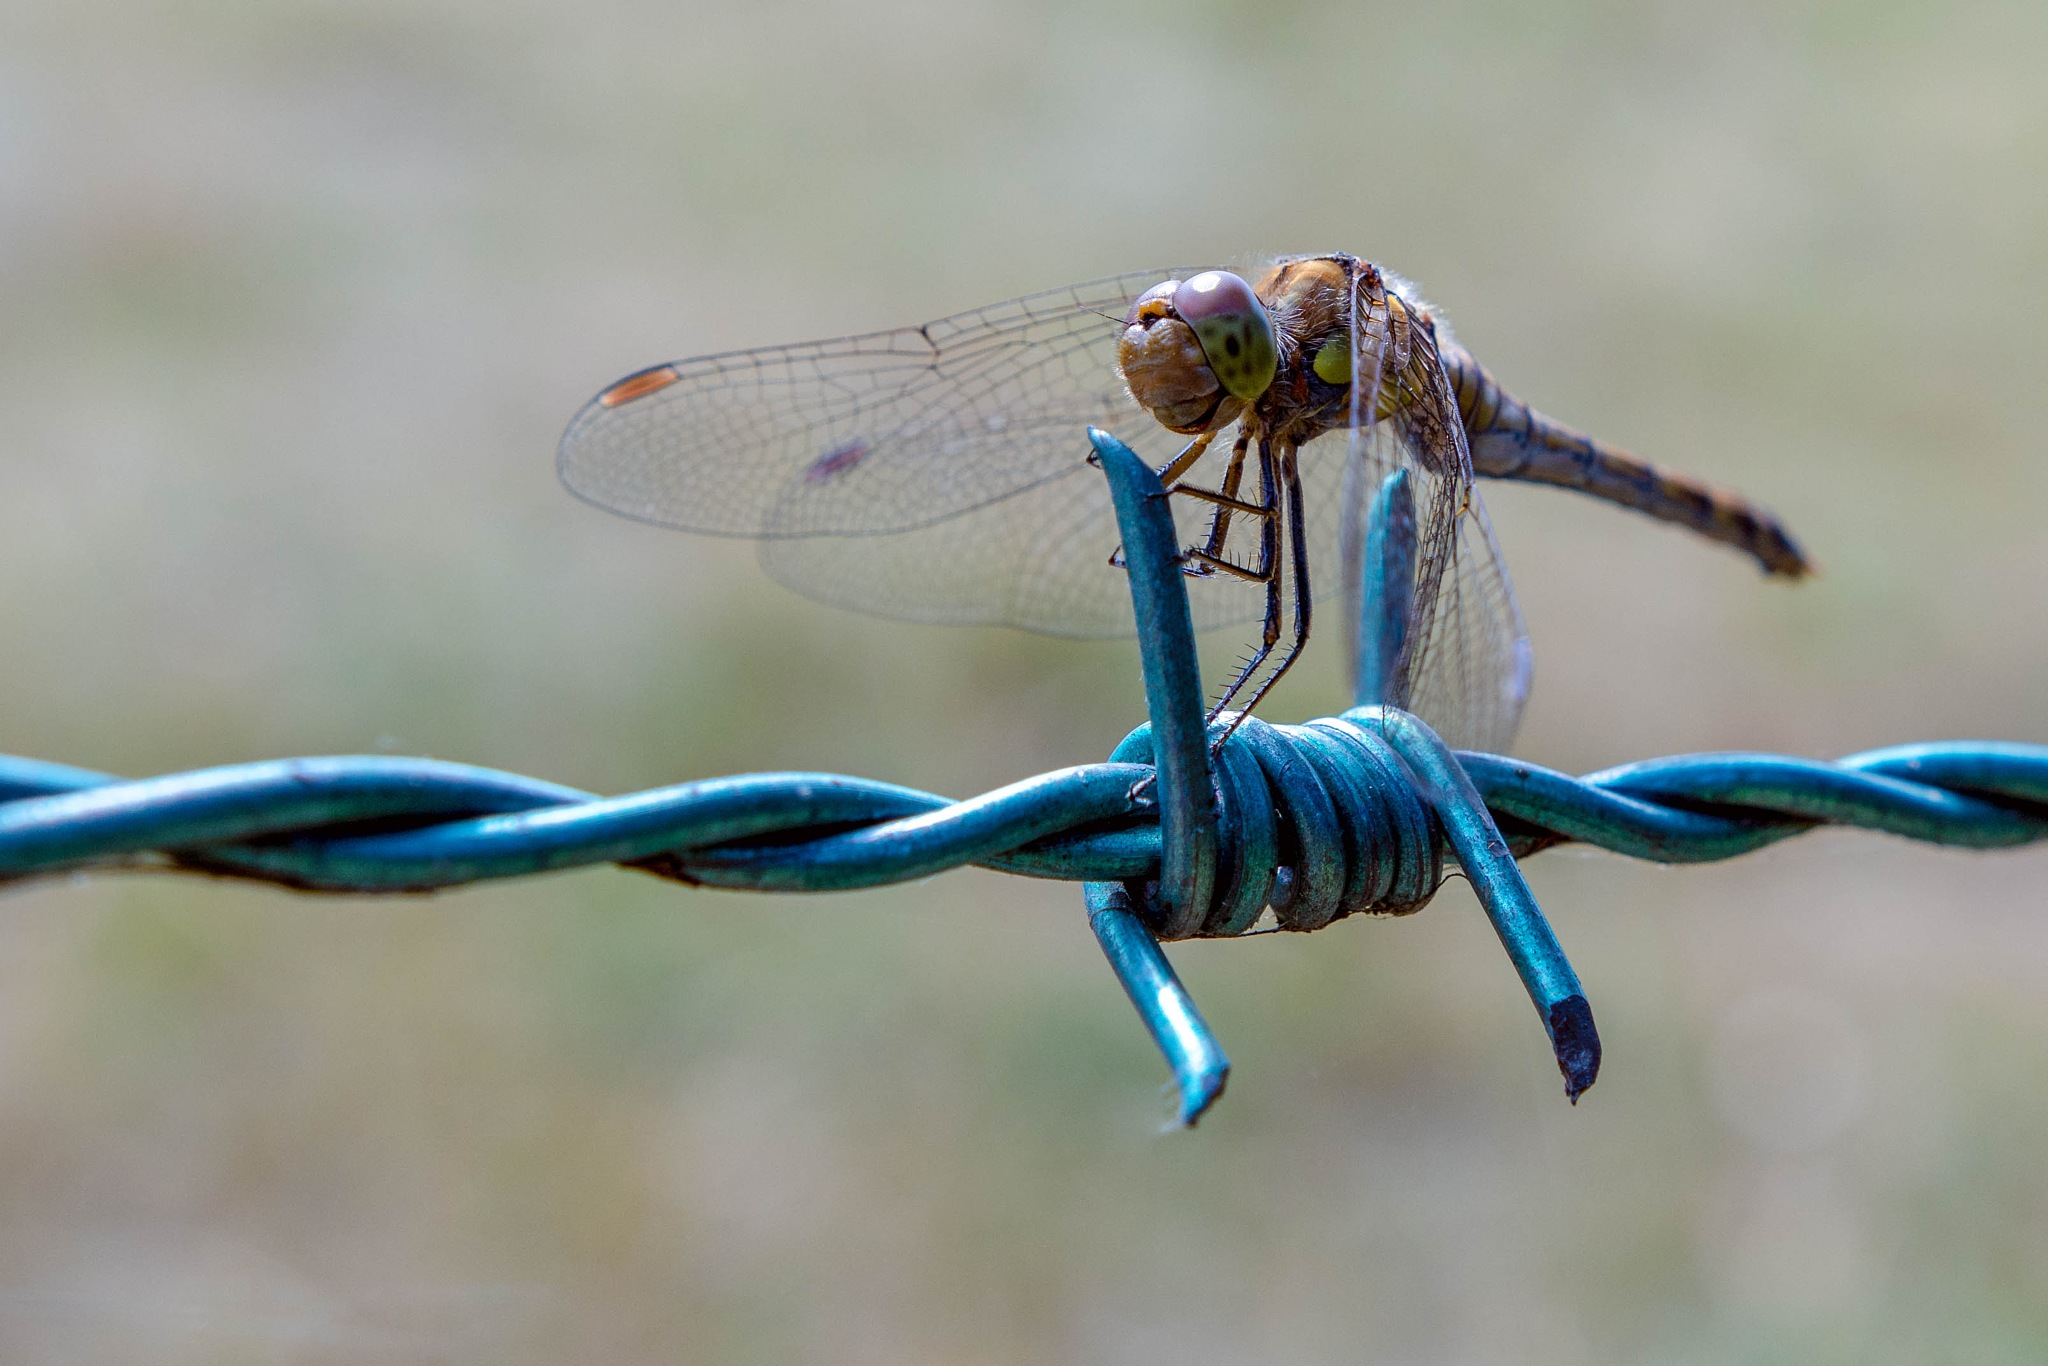 Dragonfly by kevin.wood.359126